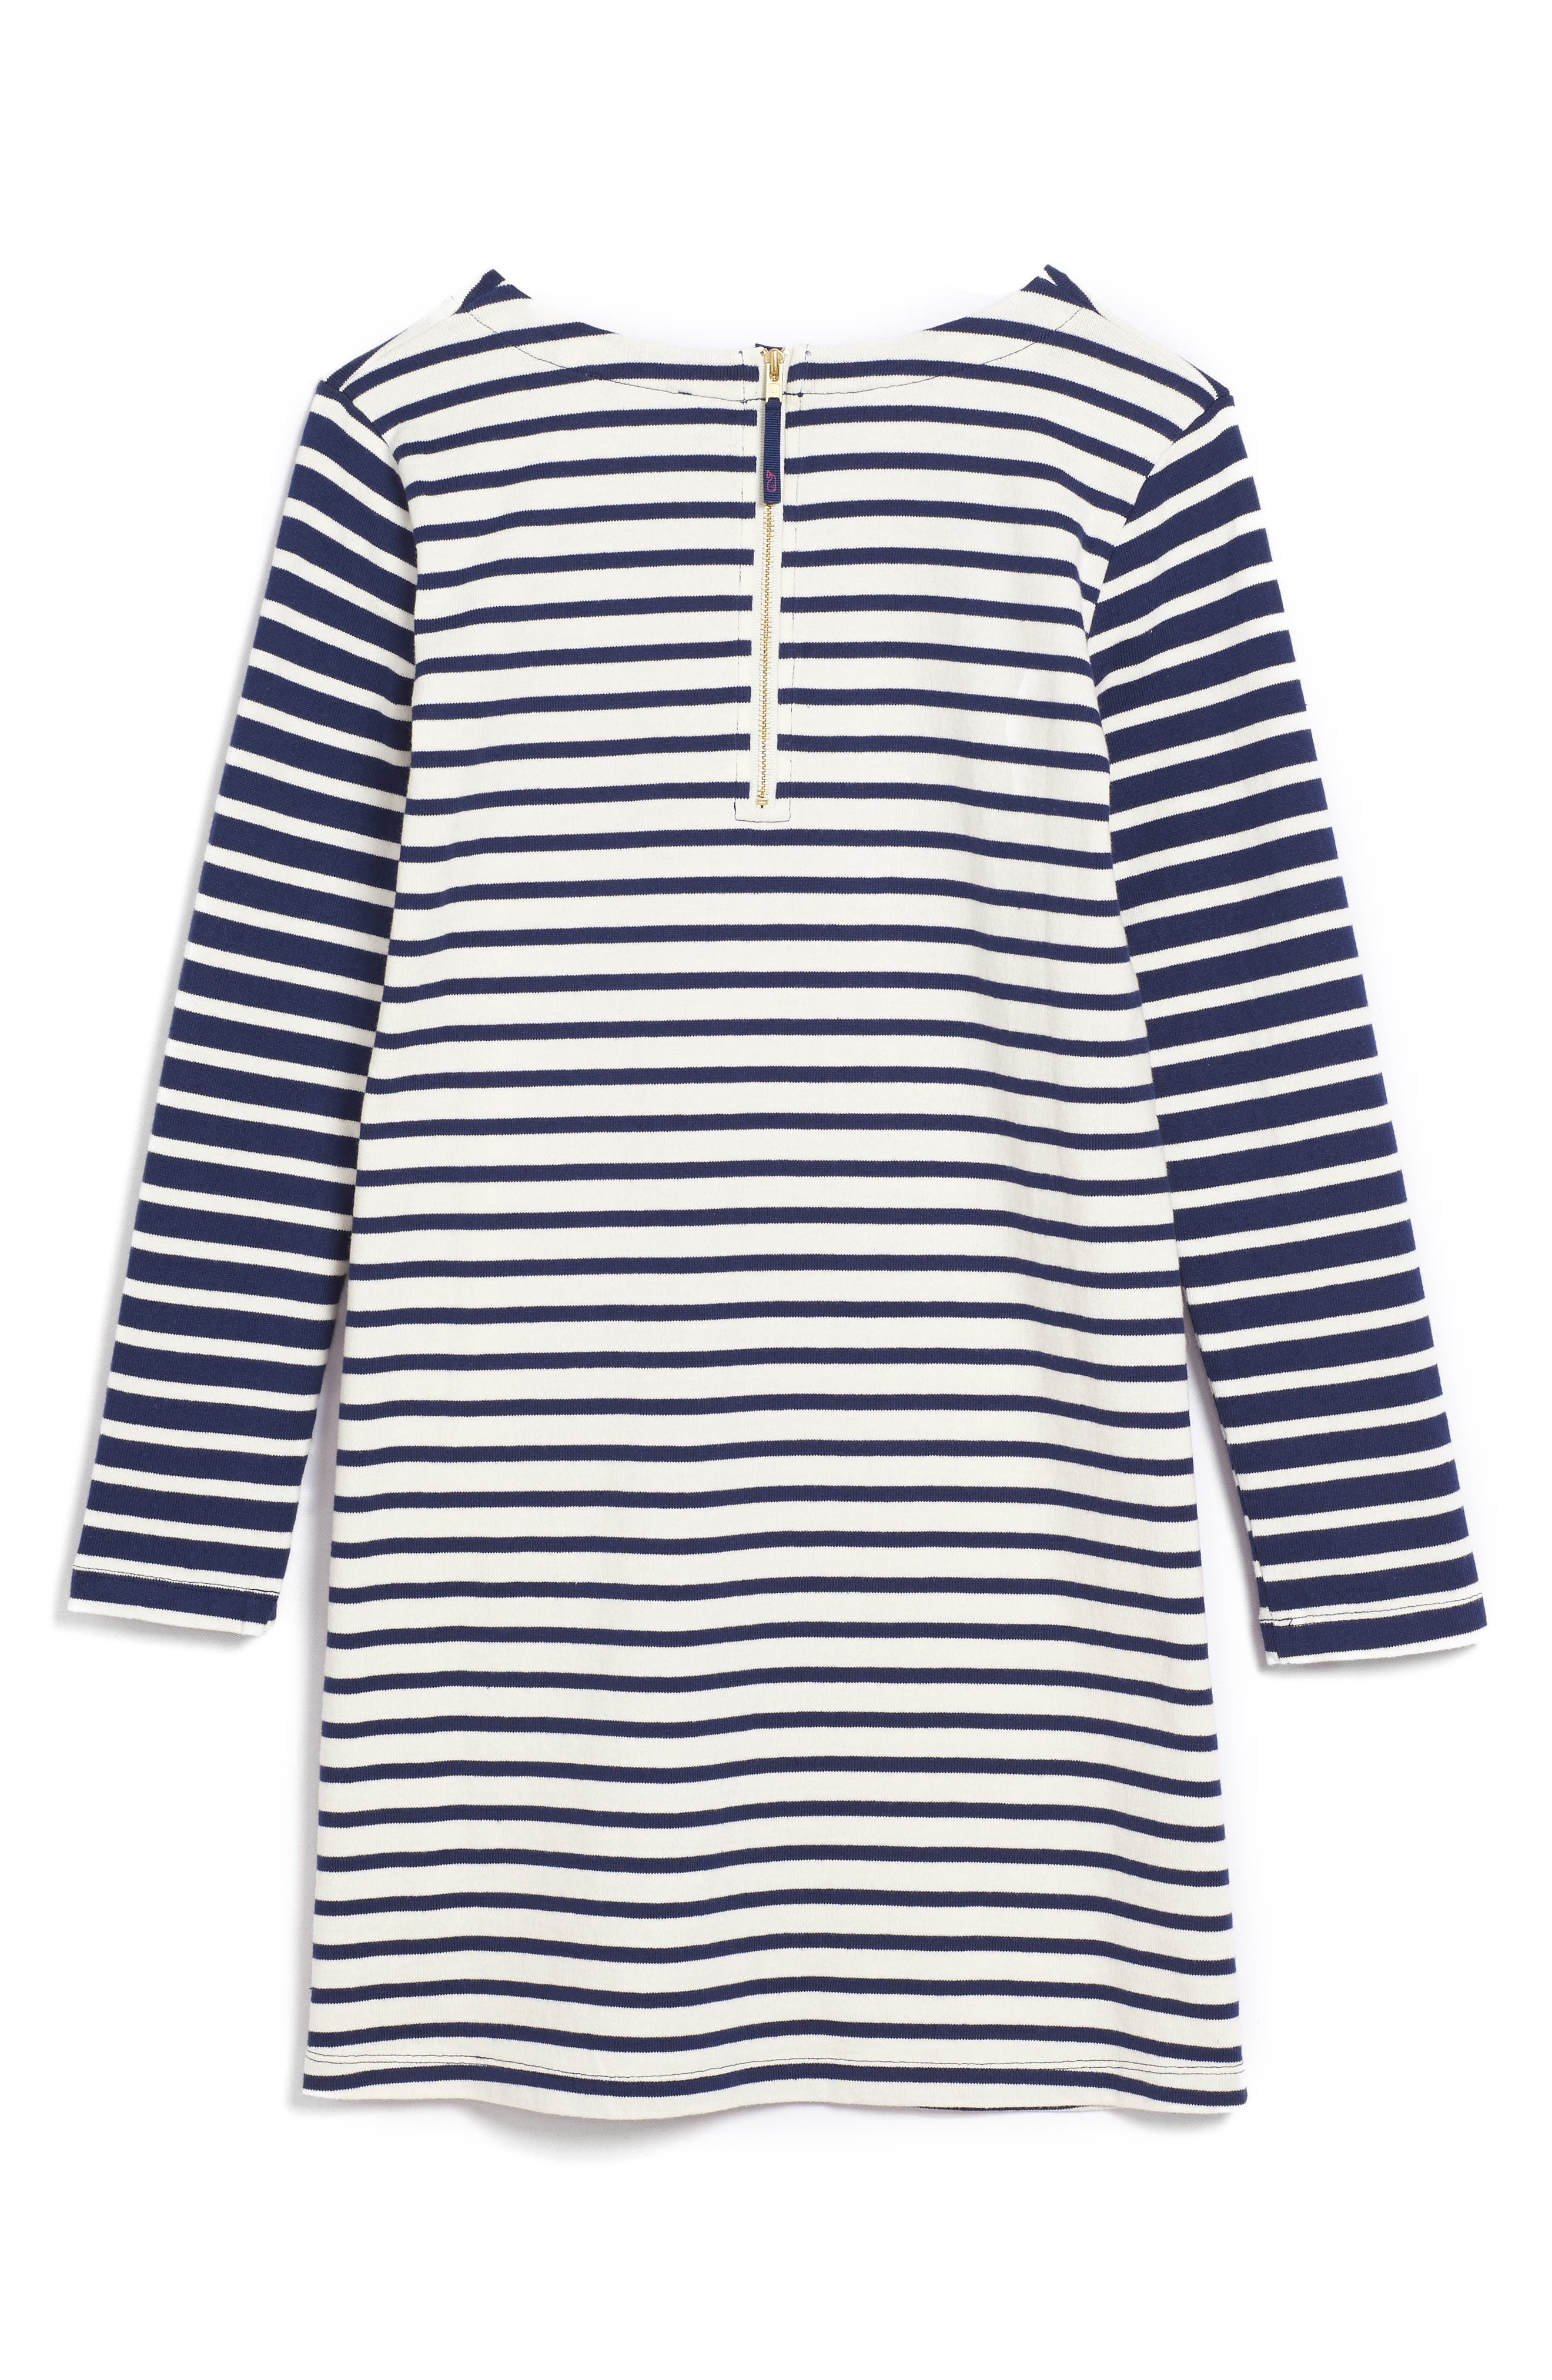 Alternate Image 2  - vineyard vines Stripe Knit Dress (Little Girls & Big Girls)